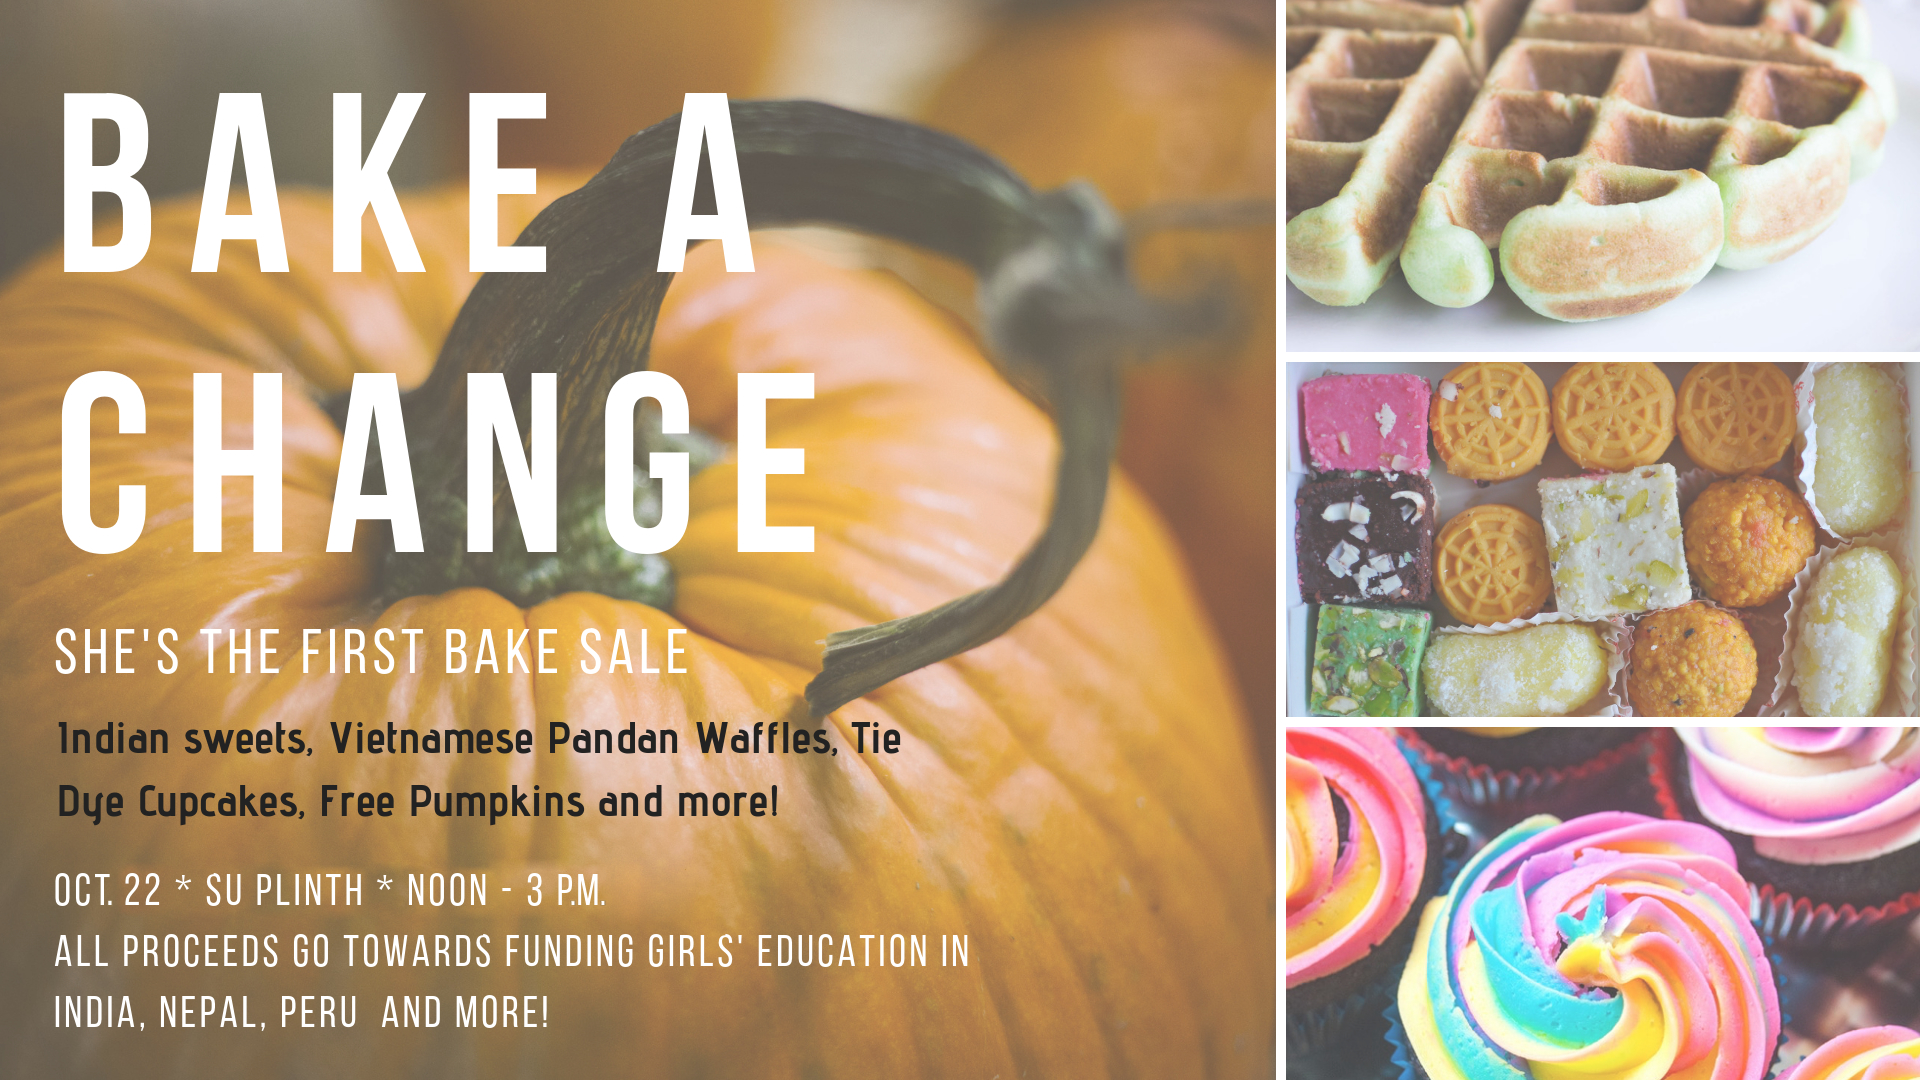 Information regarding Bake a Change is as follows Start date is October 17 2018 and End Date is October 23 2018 and Name of Ad/Event is Bake a Change and File is Browse and File Name is 1539618303_comp.jpg and Panel is Main and Name is Megan Khong and Email is mlk160130@utdallas.edu and Affiliation is Recognized Student Organization and Group Name is She's the First at the University of Texas at Dallas and